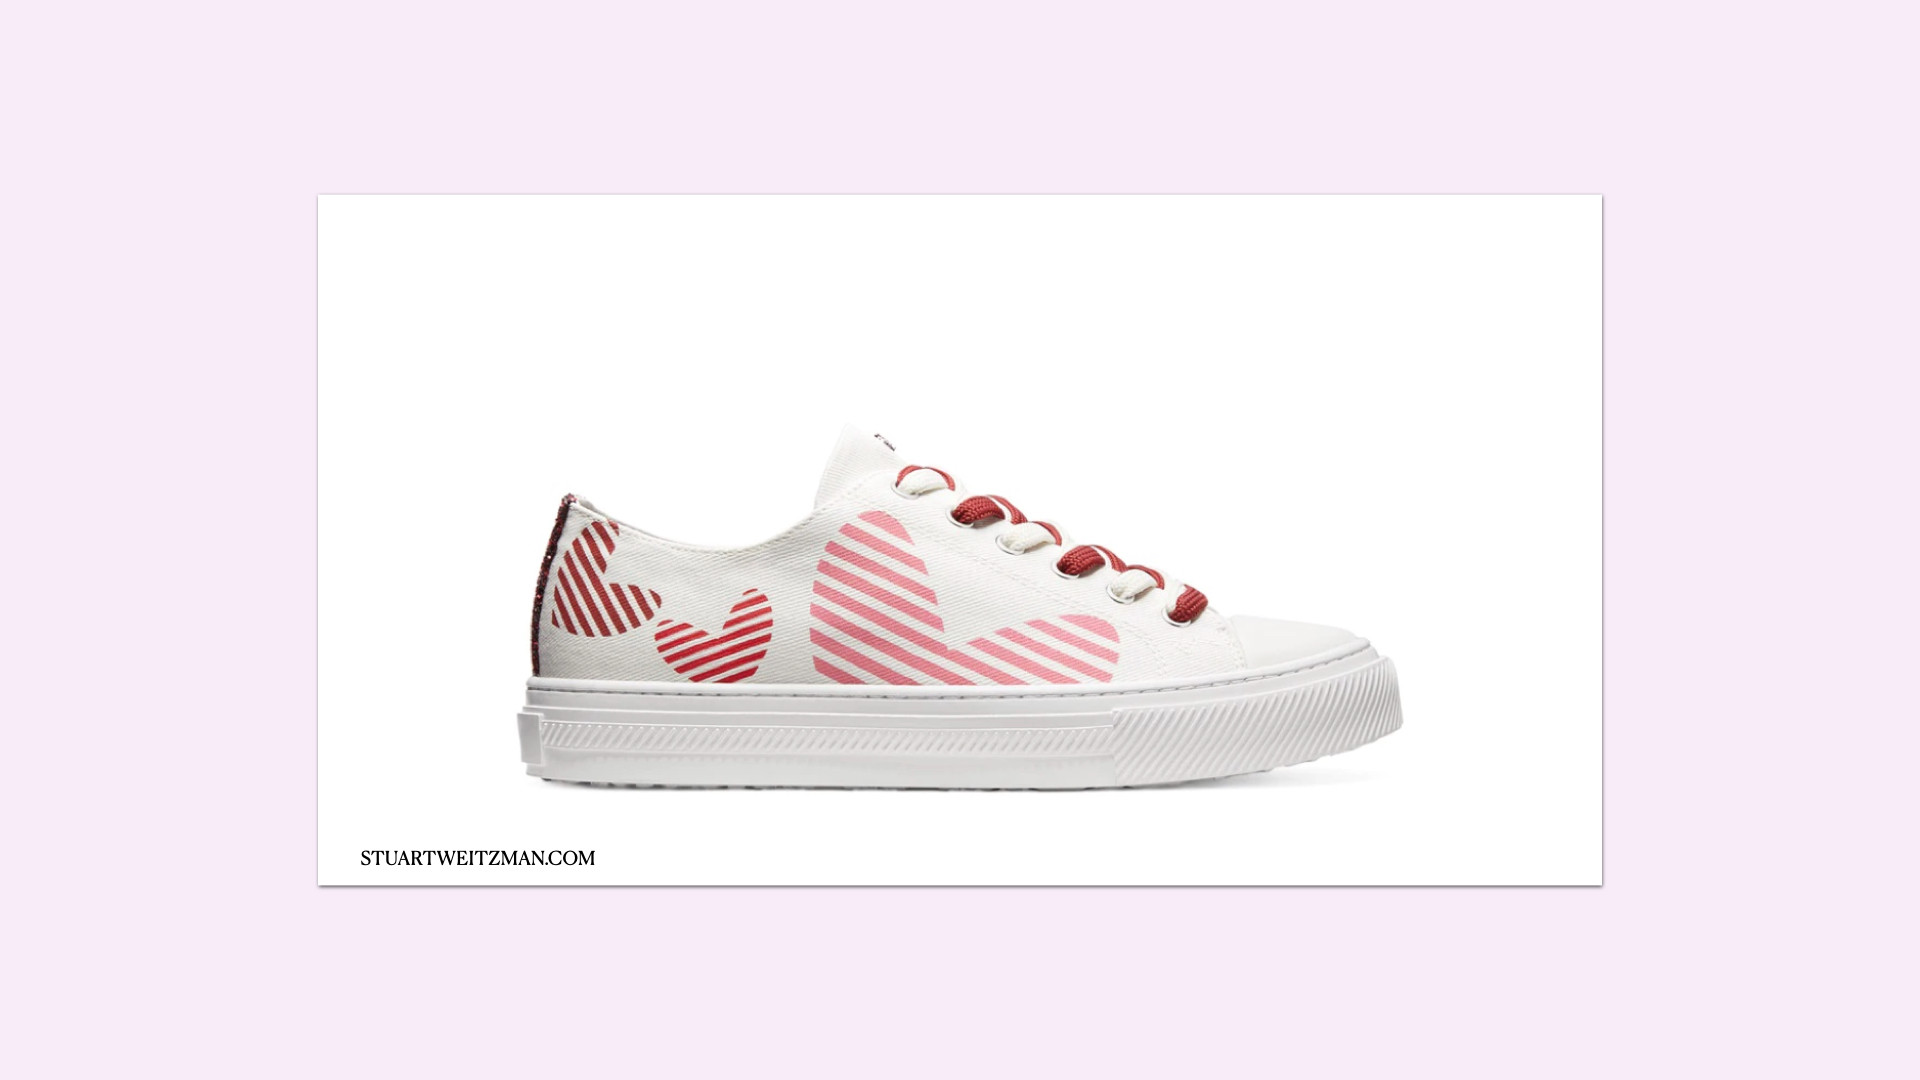 THE OLLIE HEART SNEAKER